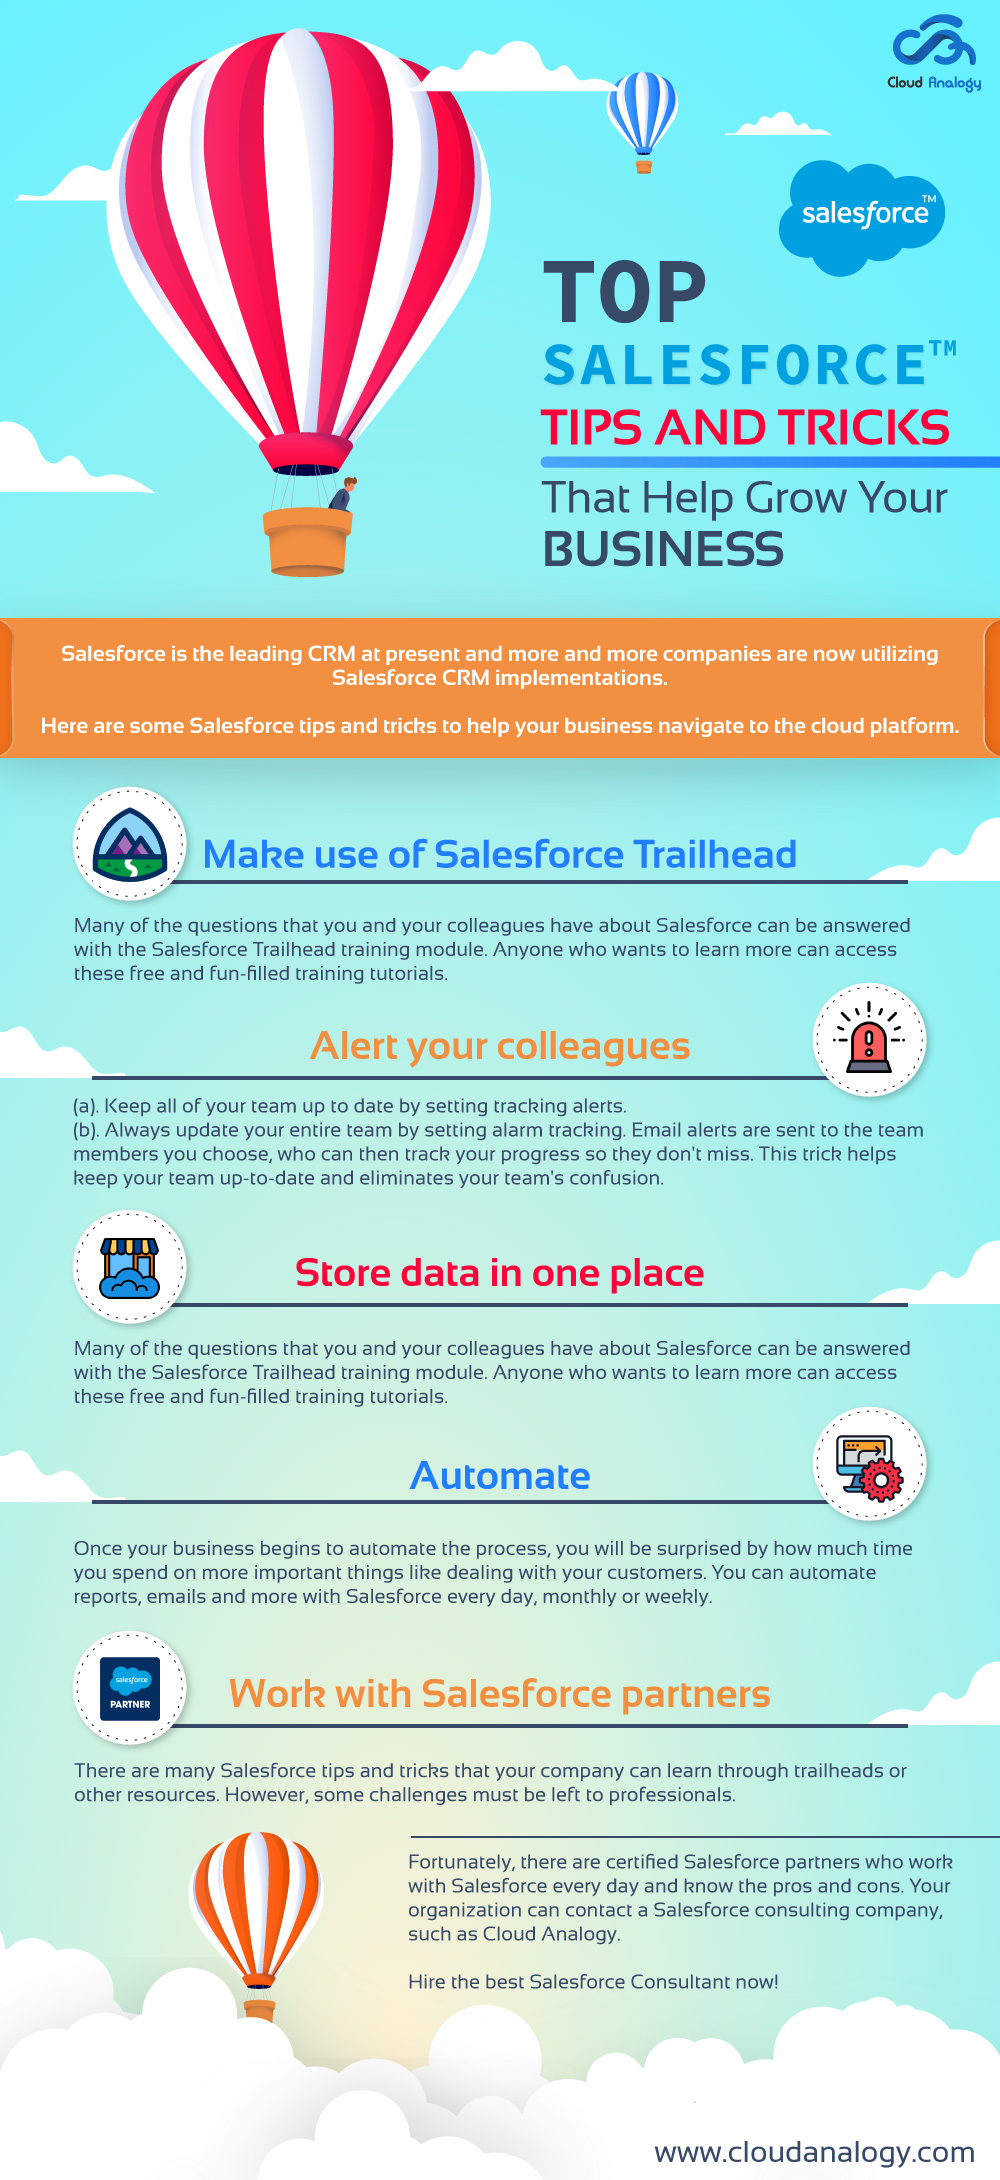 Top Salesforce Tips And Tricks That Help Grow Your Business